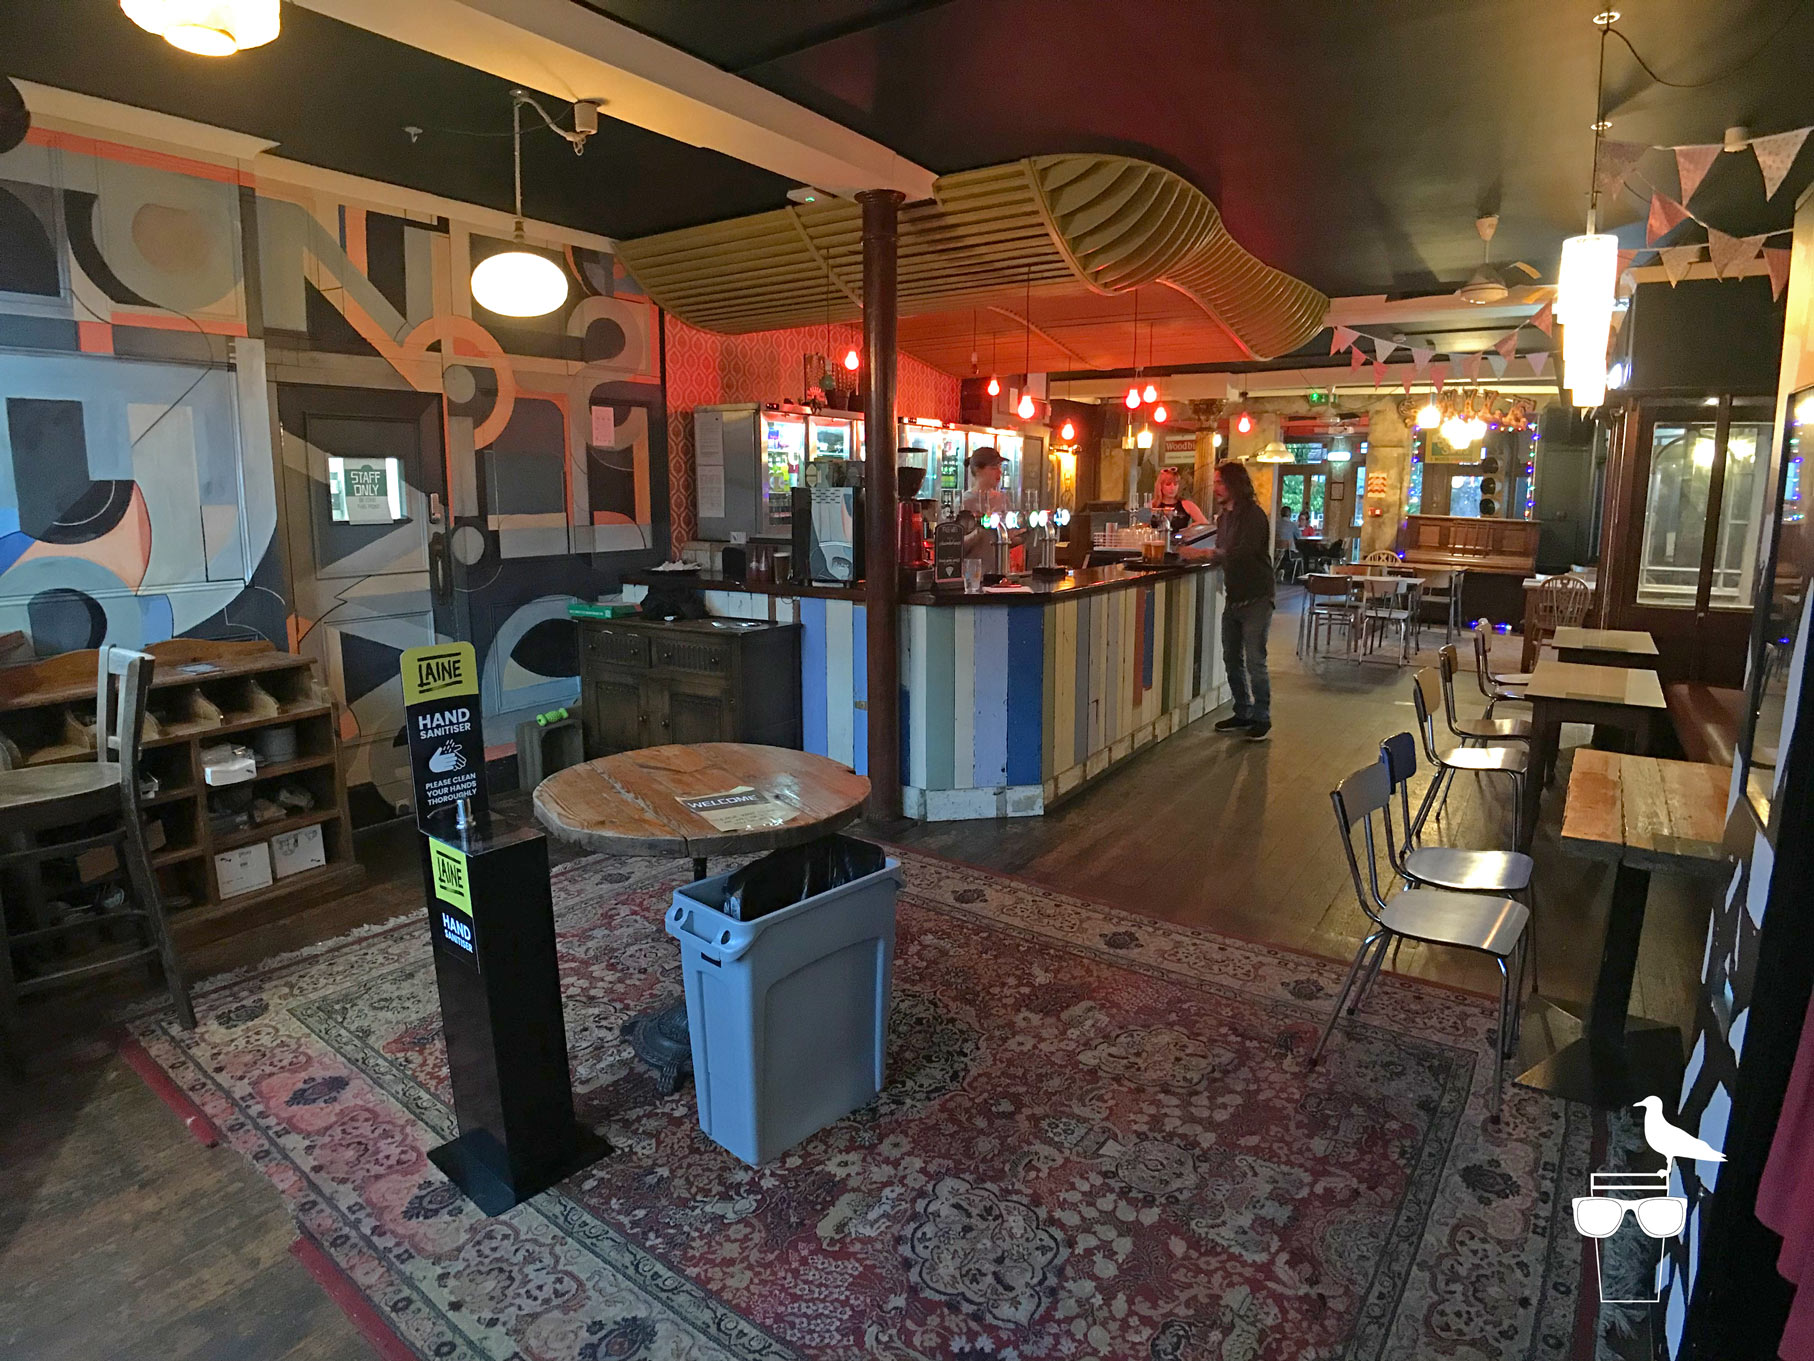 sidewinder-brighton-inside-wide-view-of-bar